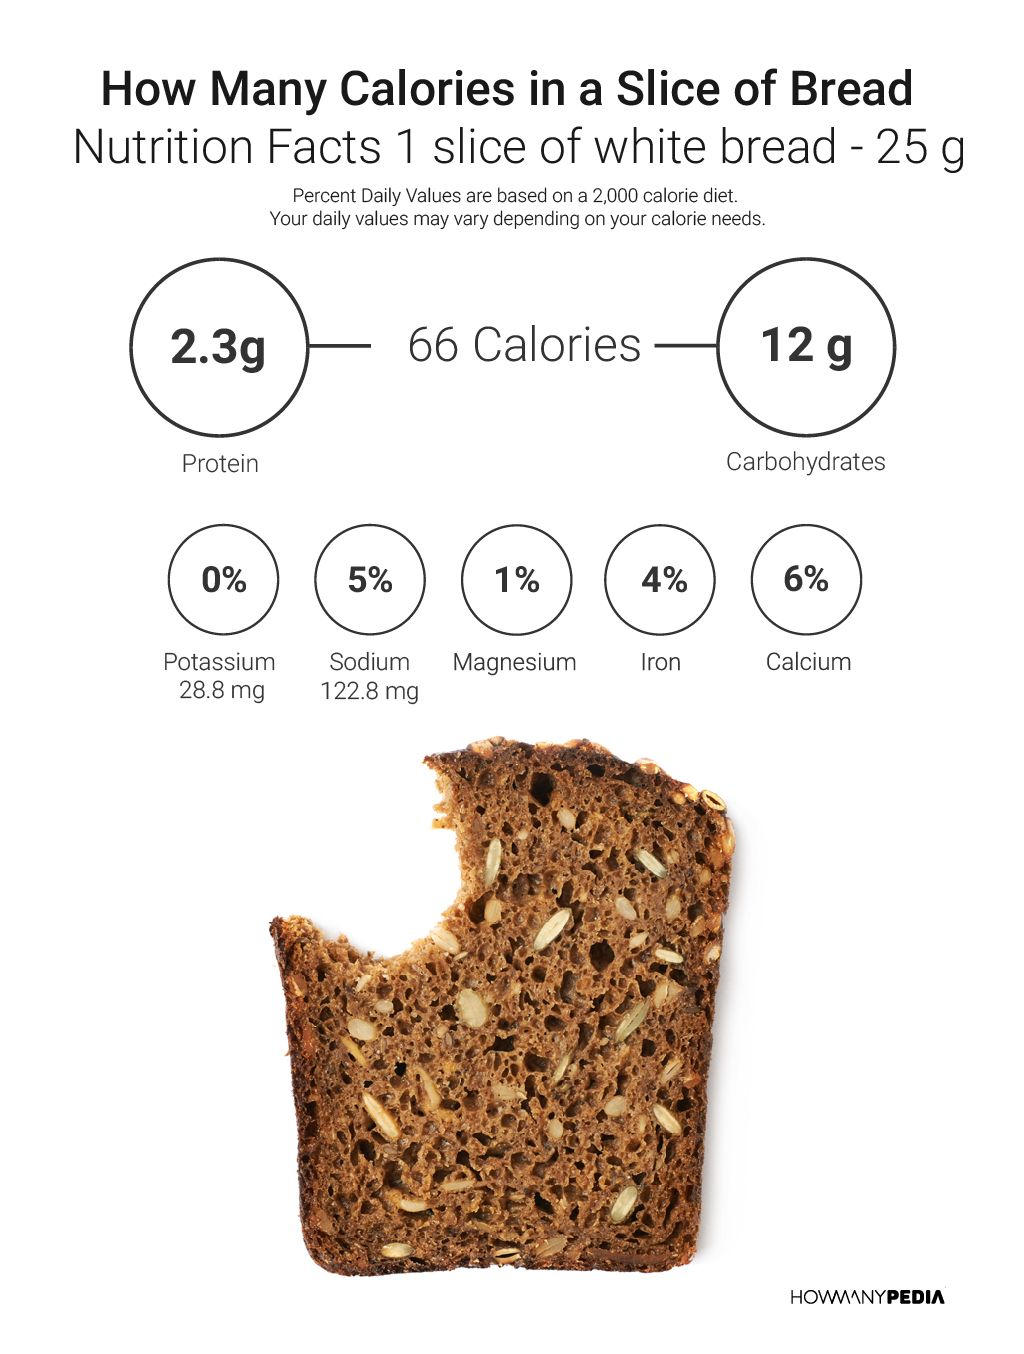 pin by howmanypedia on calories & carbs | slice of bread, bread